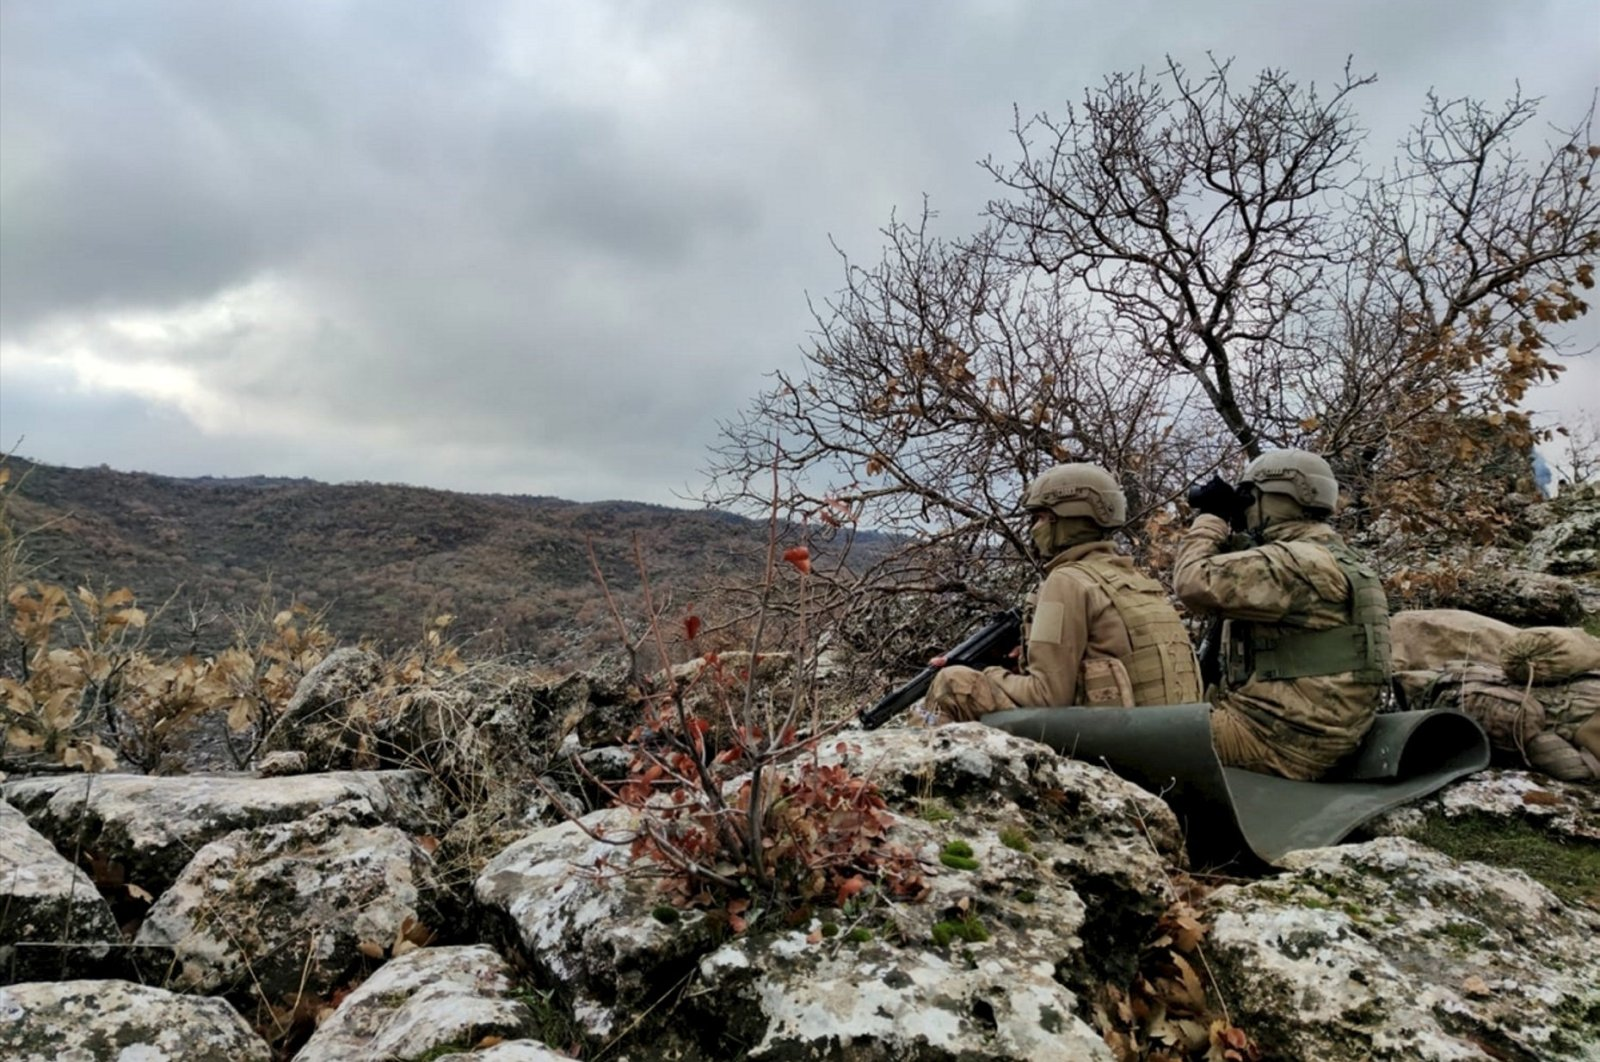 Turkish security forces regularly conduct counterterrorism operations in the eastern and southeastern provinces, where the PKK has attempted to establish a strong presence.